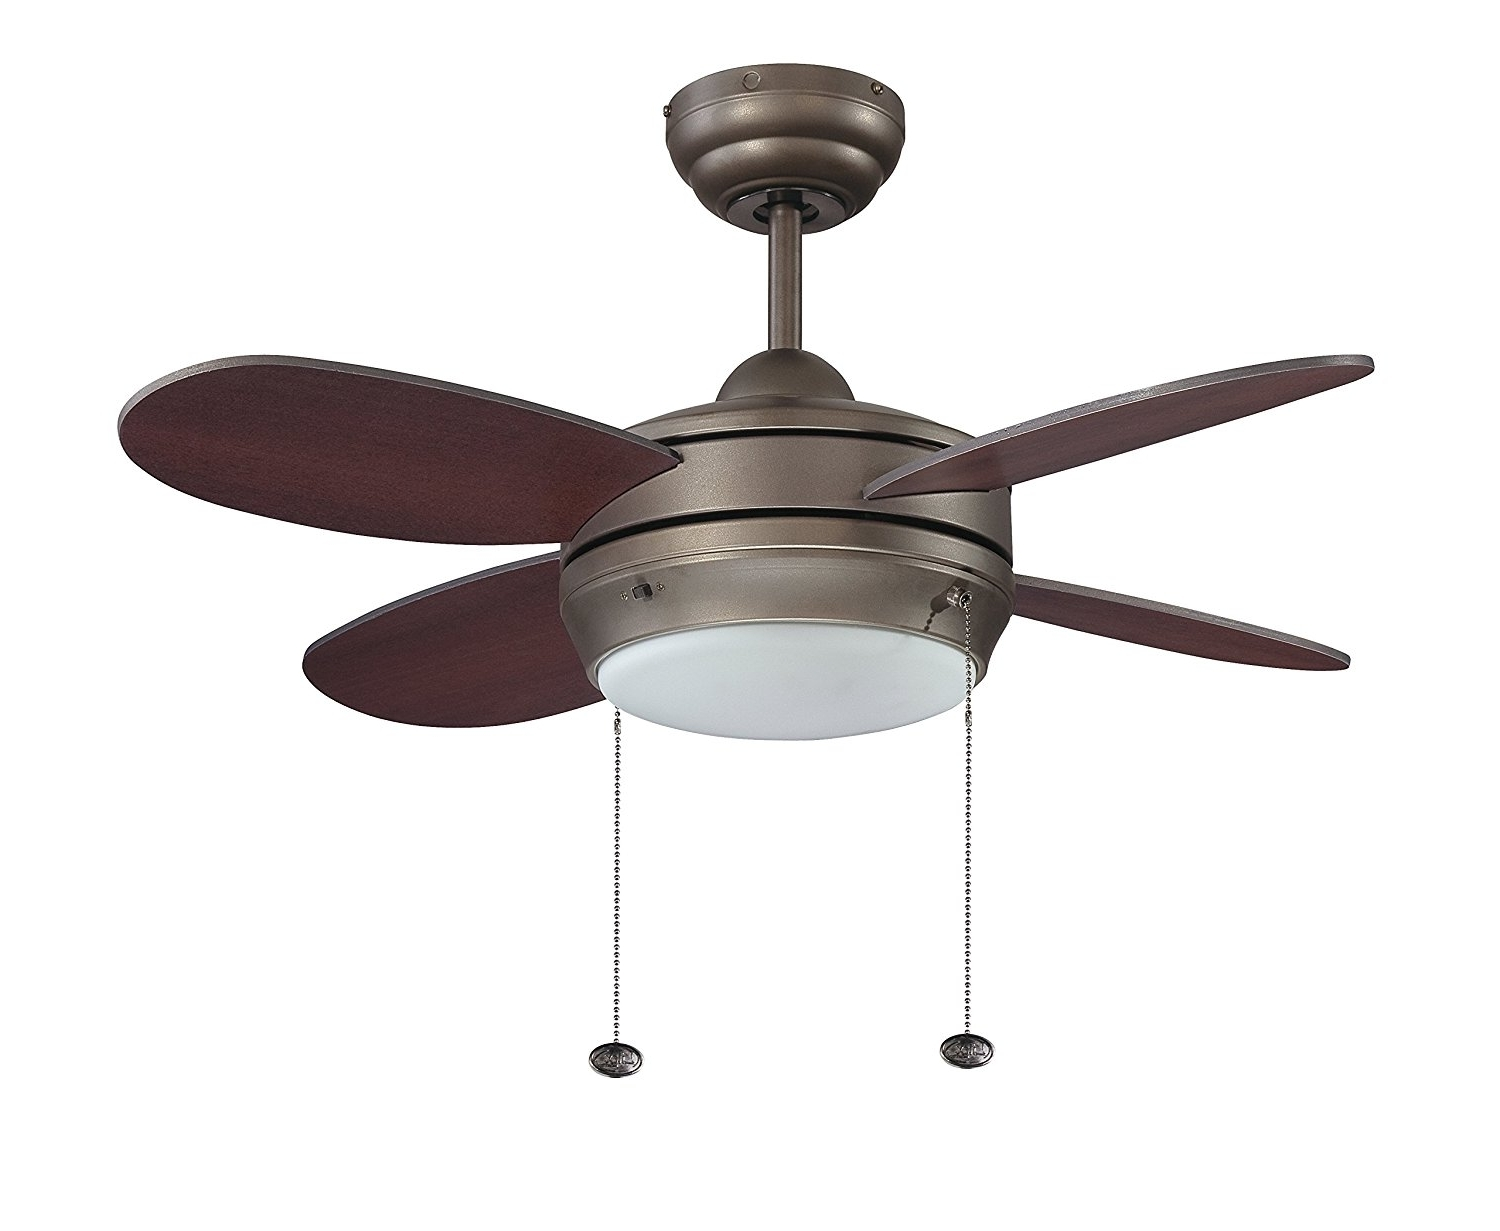 24 Inch Outdoor Ceiling Fans With Light With Regard To Latest 24 Inch Ceiling Fan With Light Lowes Ceiling Lights Rustic Ceiling (View 2 of 20)